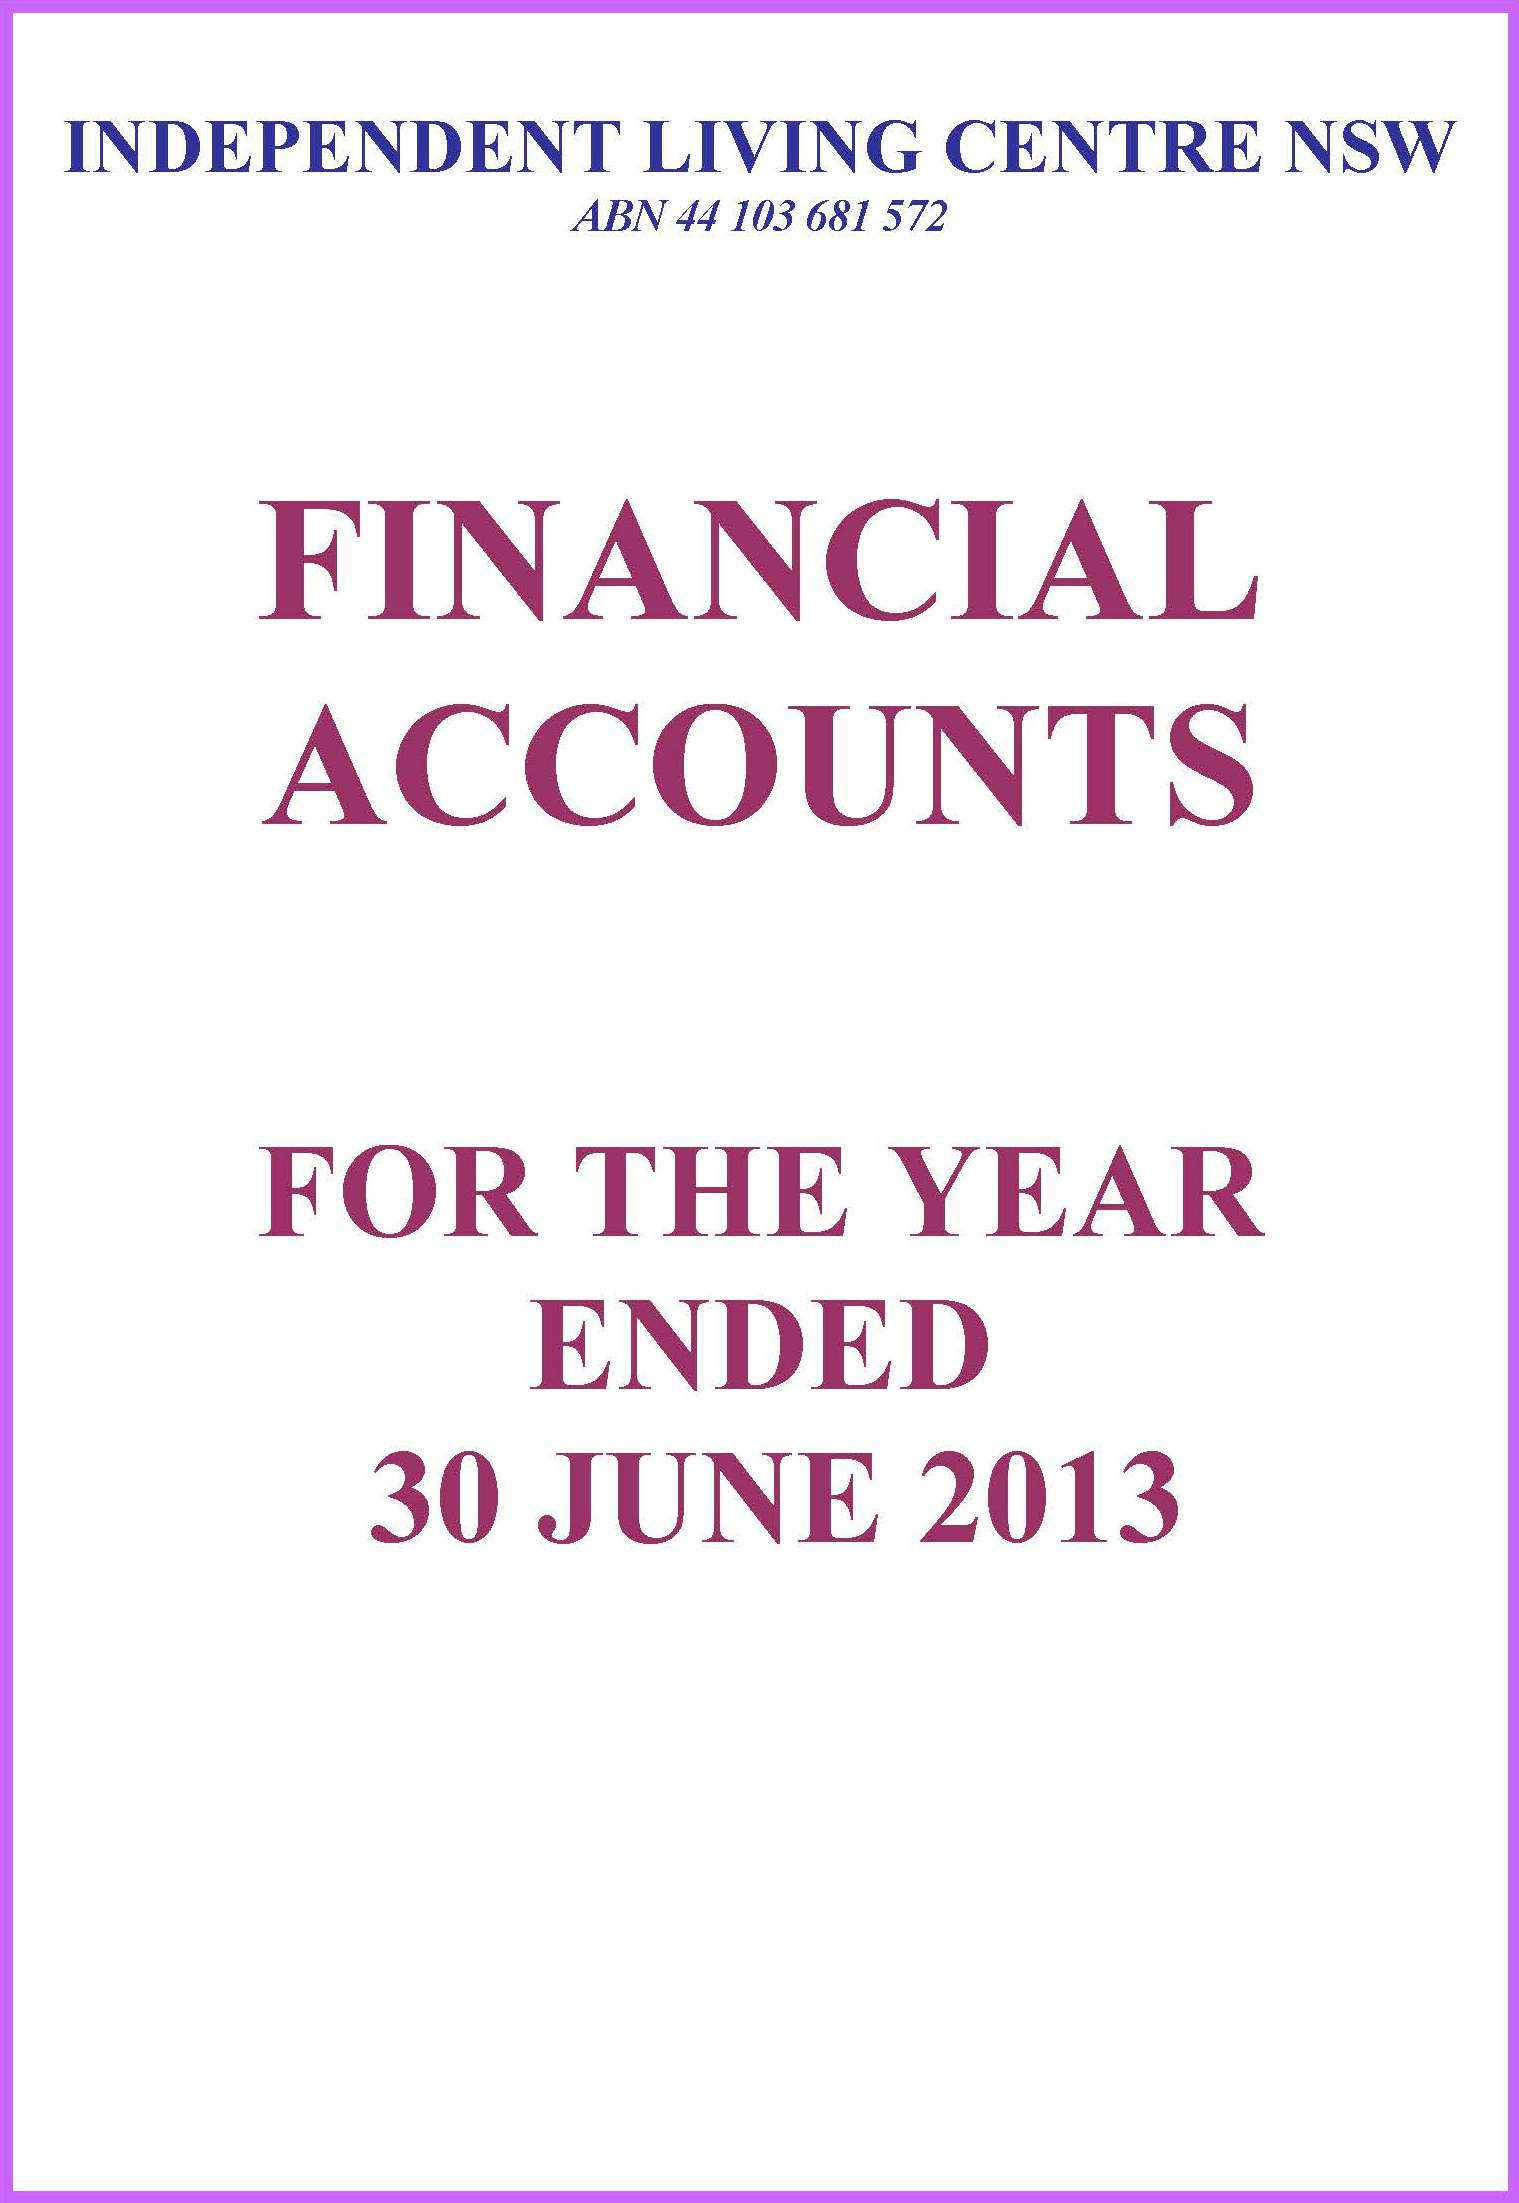 2012-2013 ILC Financial Report